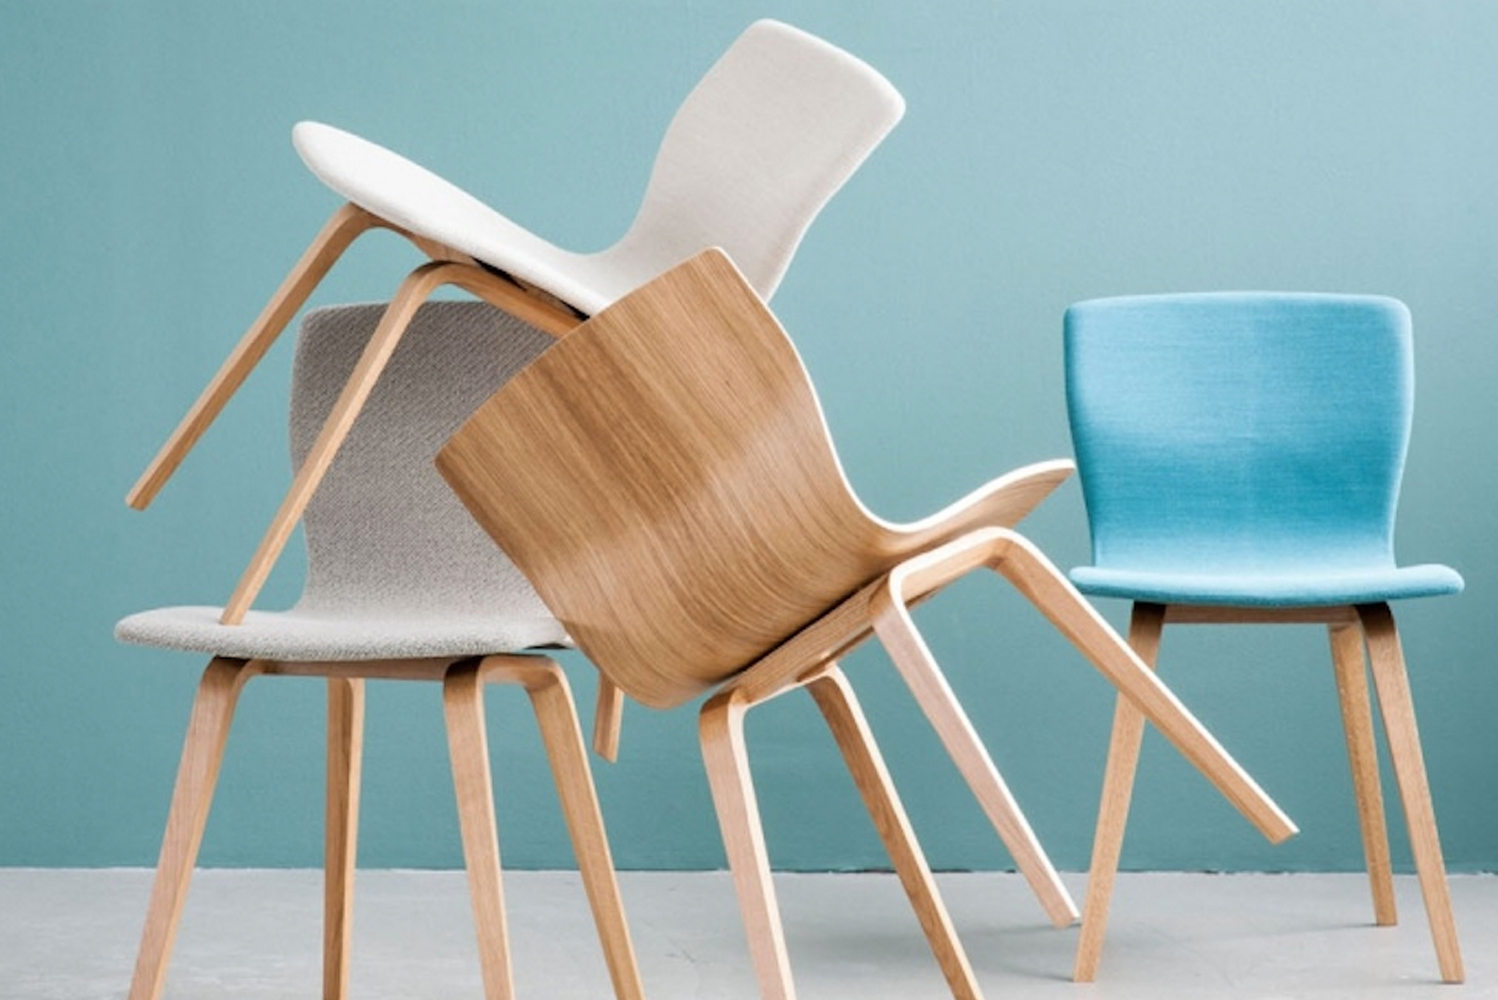 Butterfly Pull-Up is a family of four different chairs that each share the same thin seat design, but with four different base options.